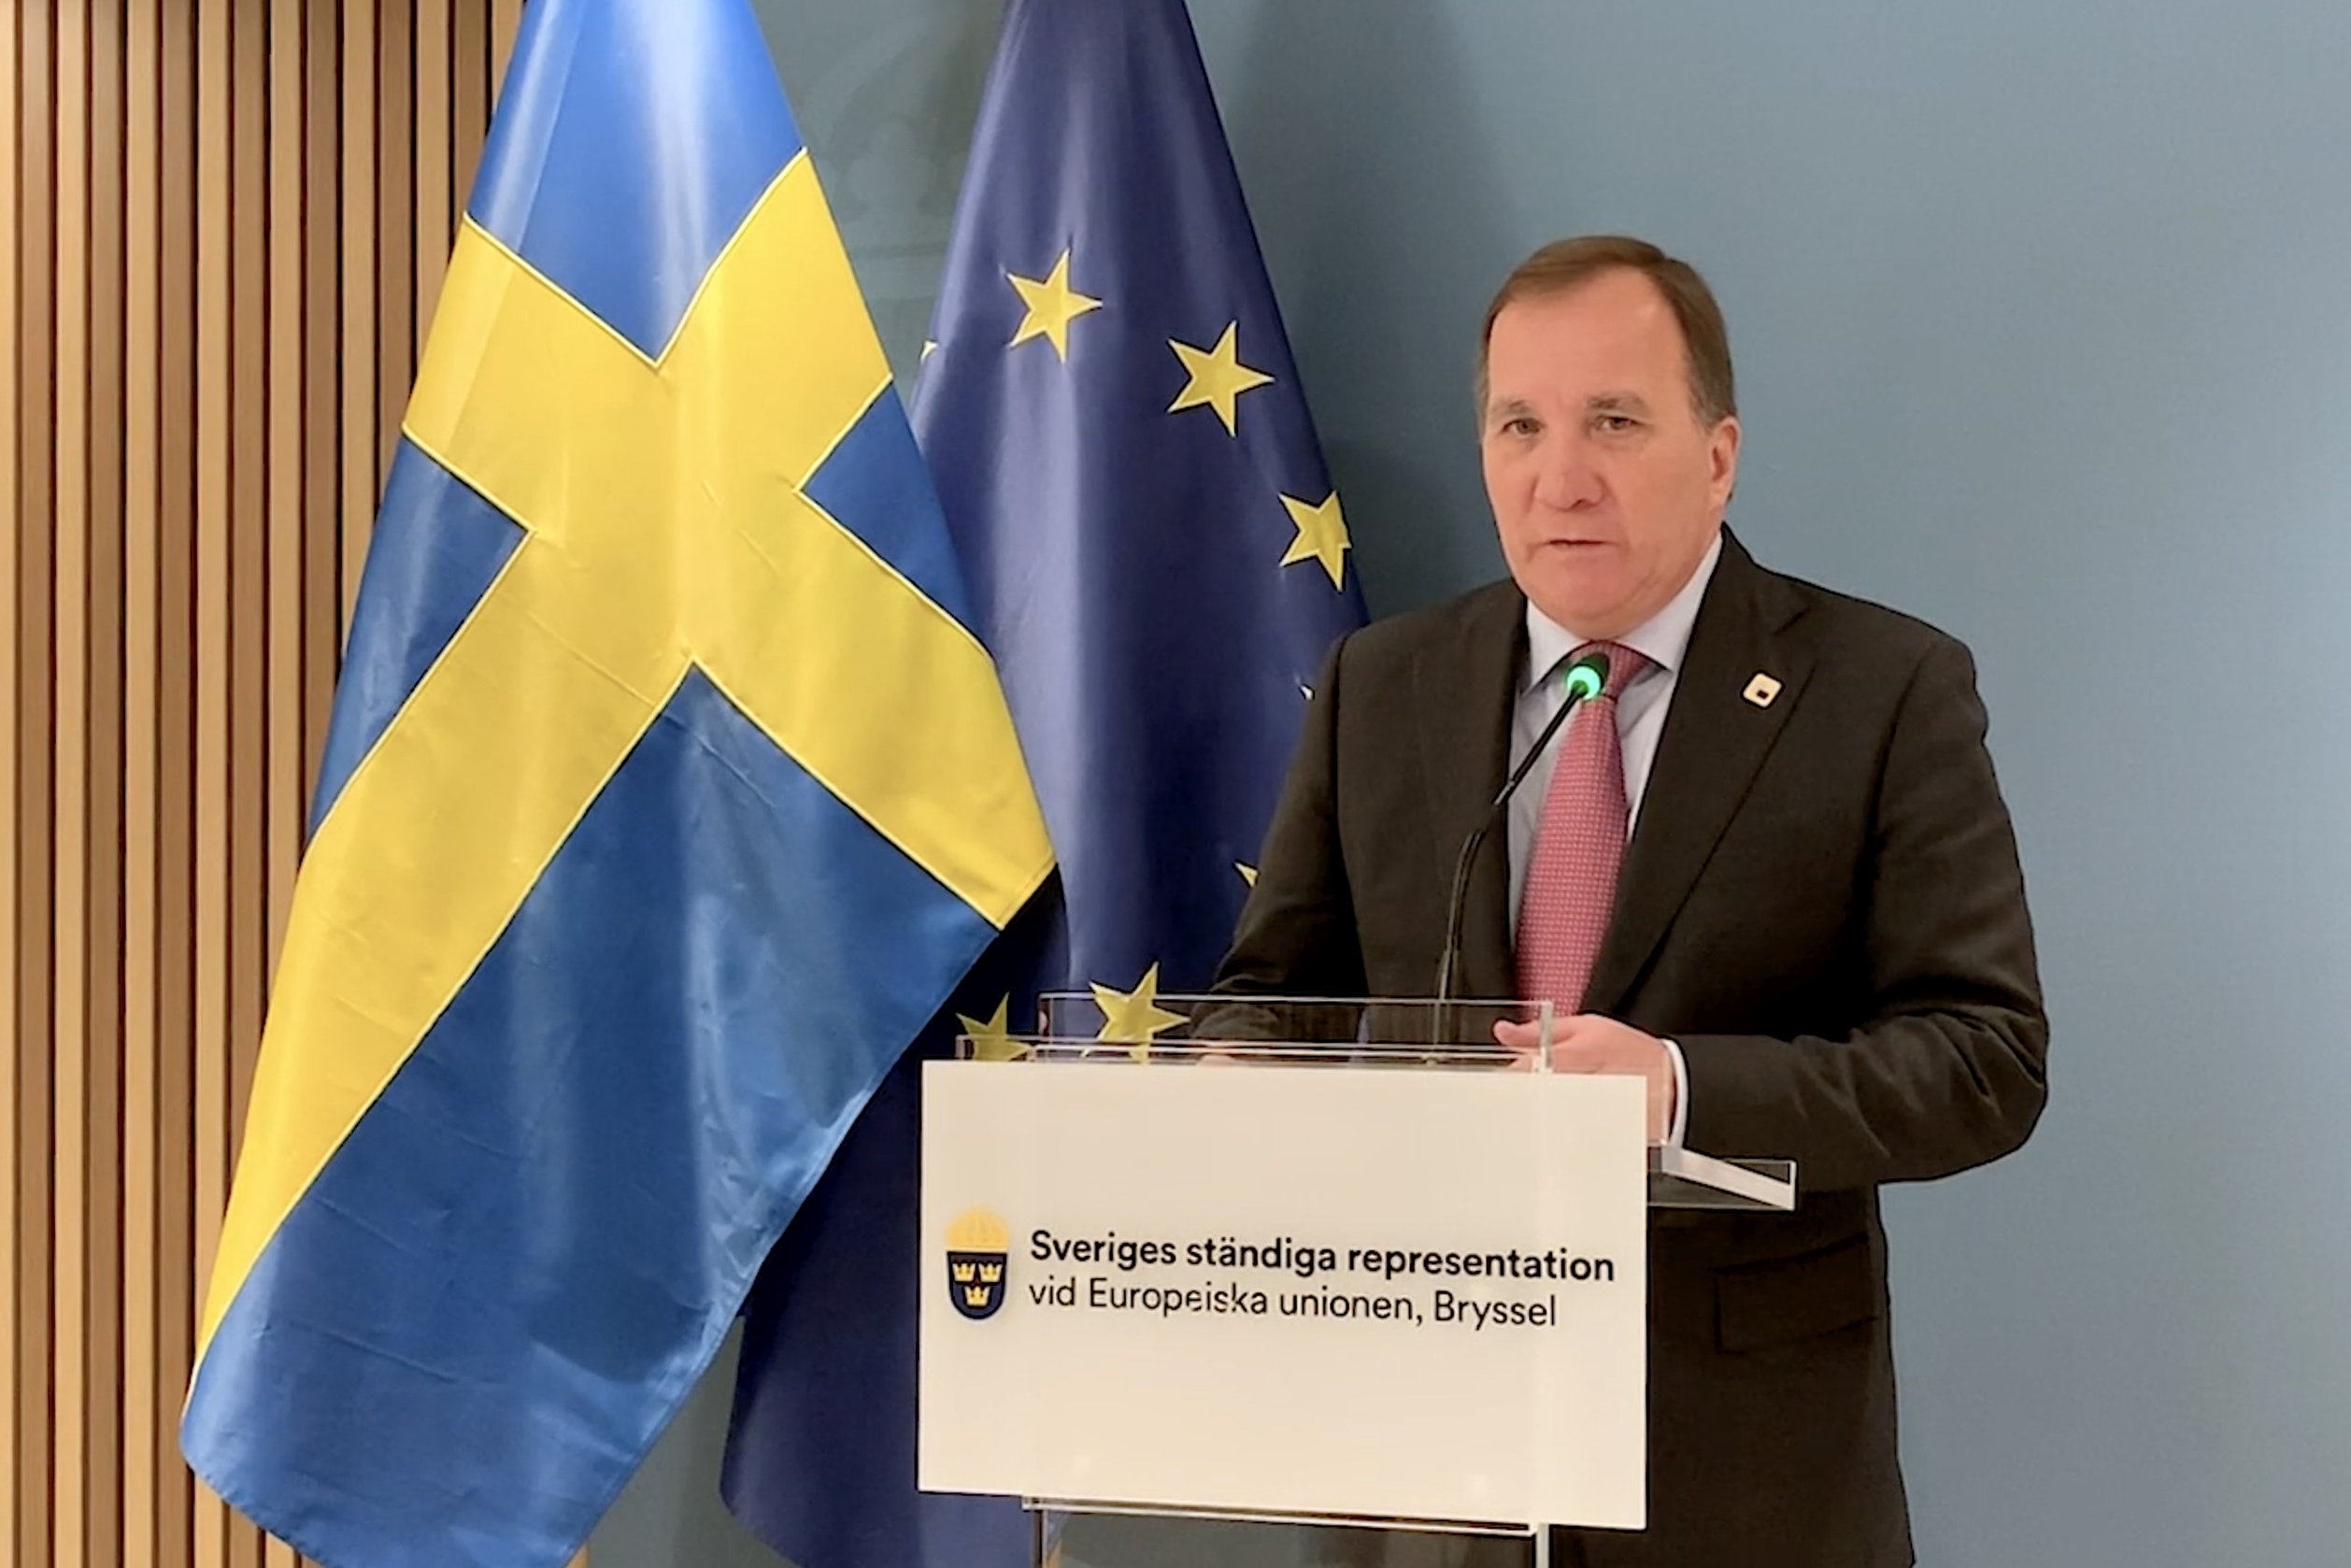 Swedish Prime Minister Stefan Löfven is speaking to journalists at a press conference.